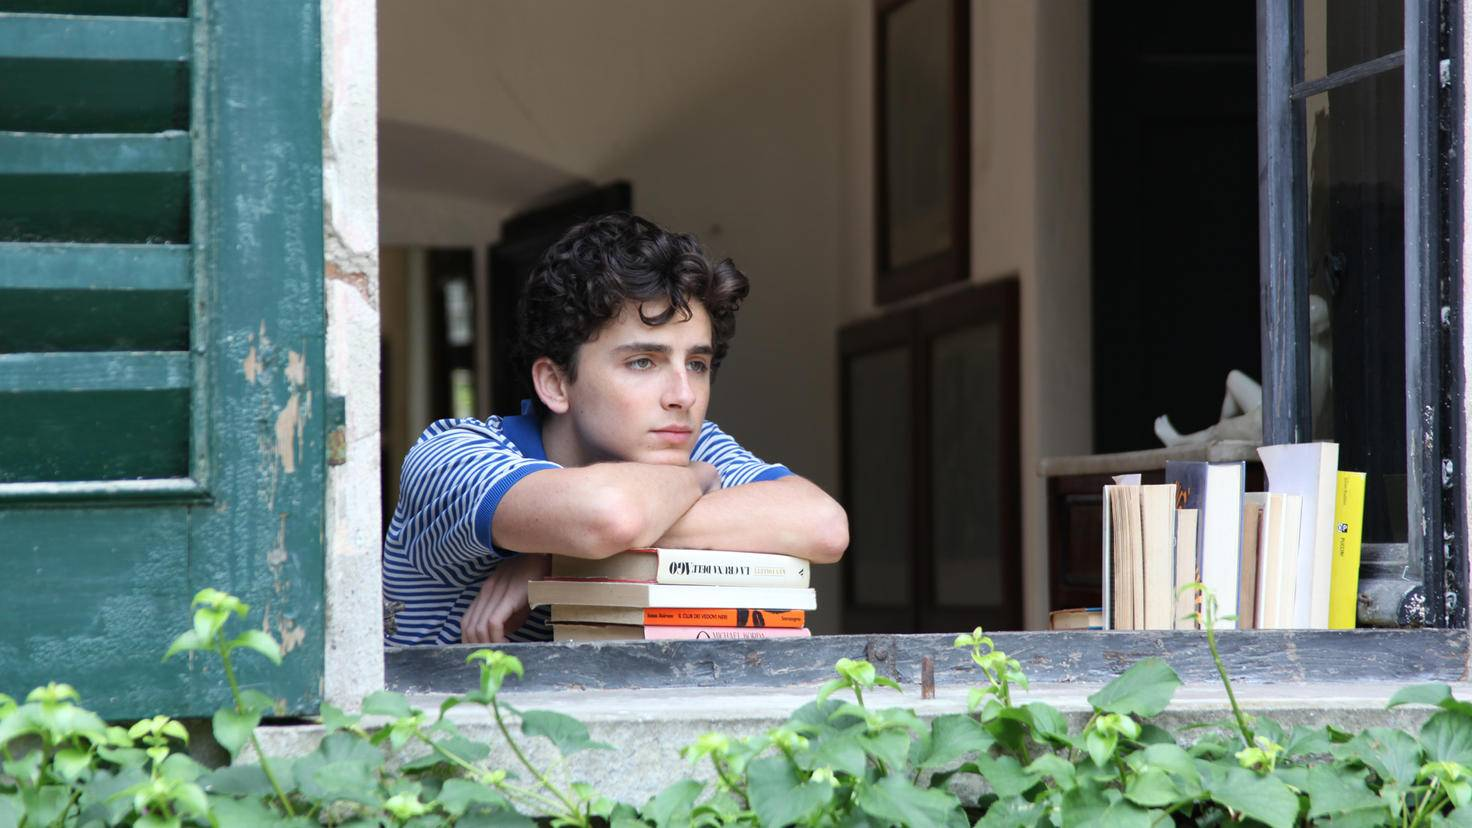 call me by your name Timothée Chalamet